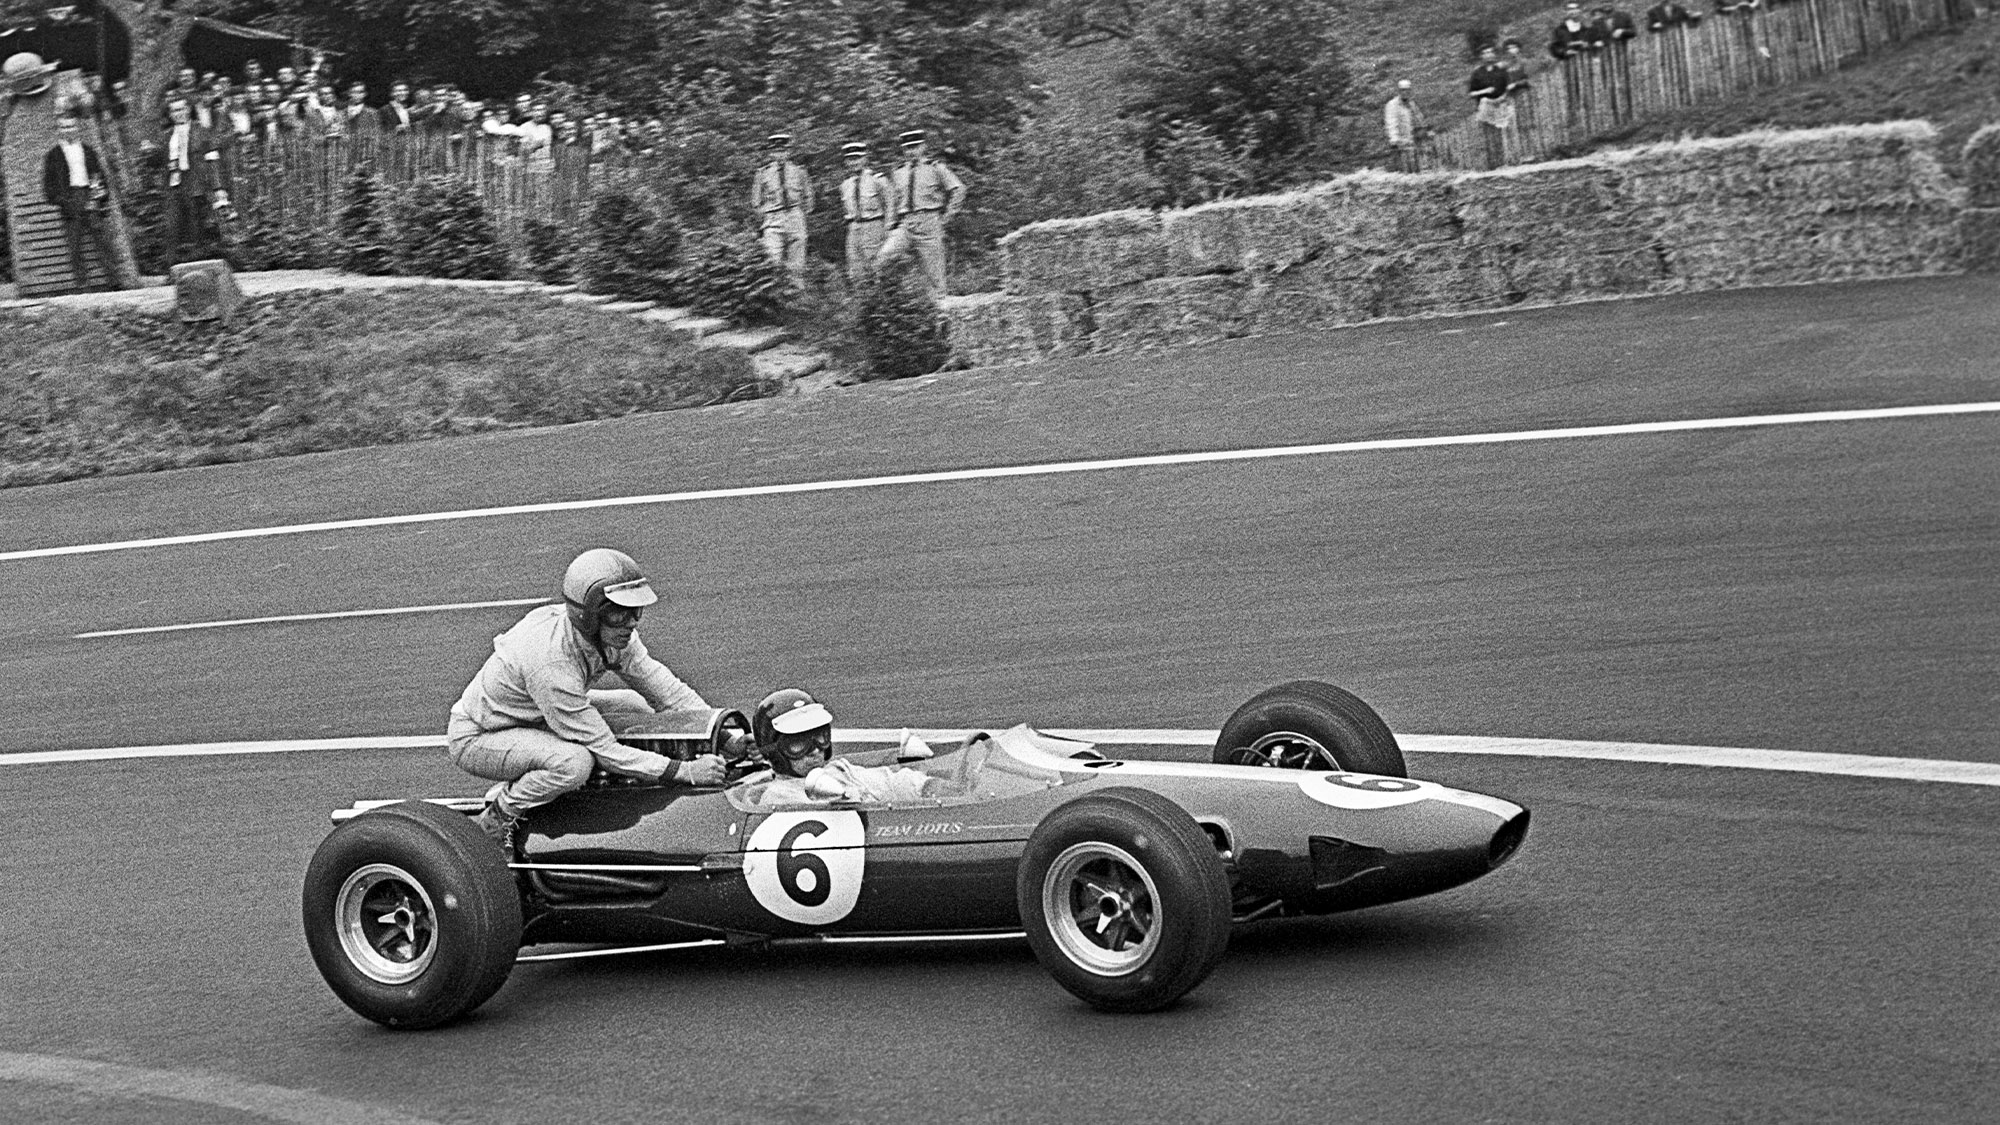 Jim Clark gives Mike Spence a lift to the pits on the back of his Lotus 25 at the 1965 French Grand Prix